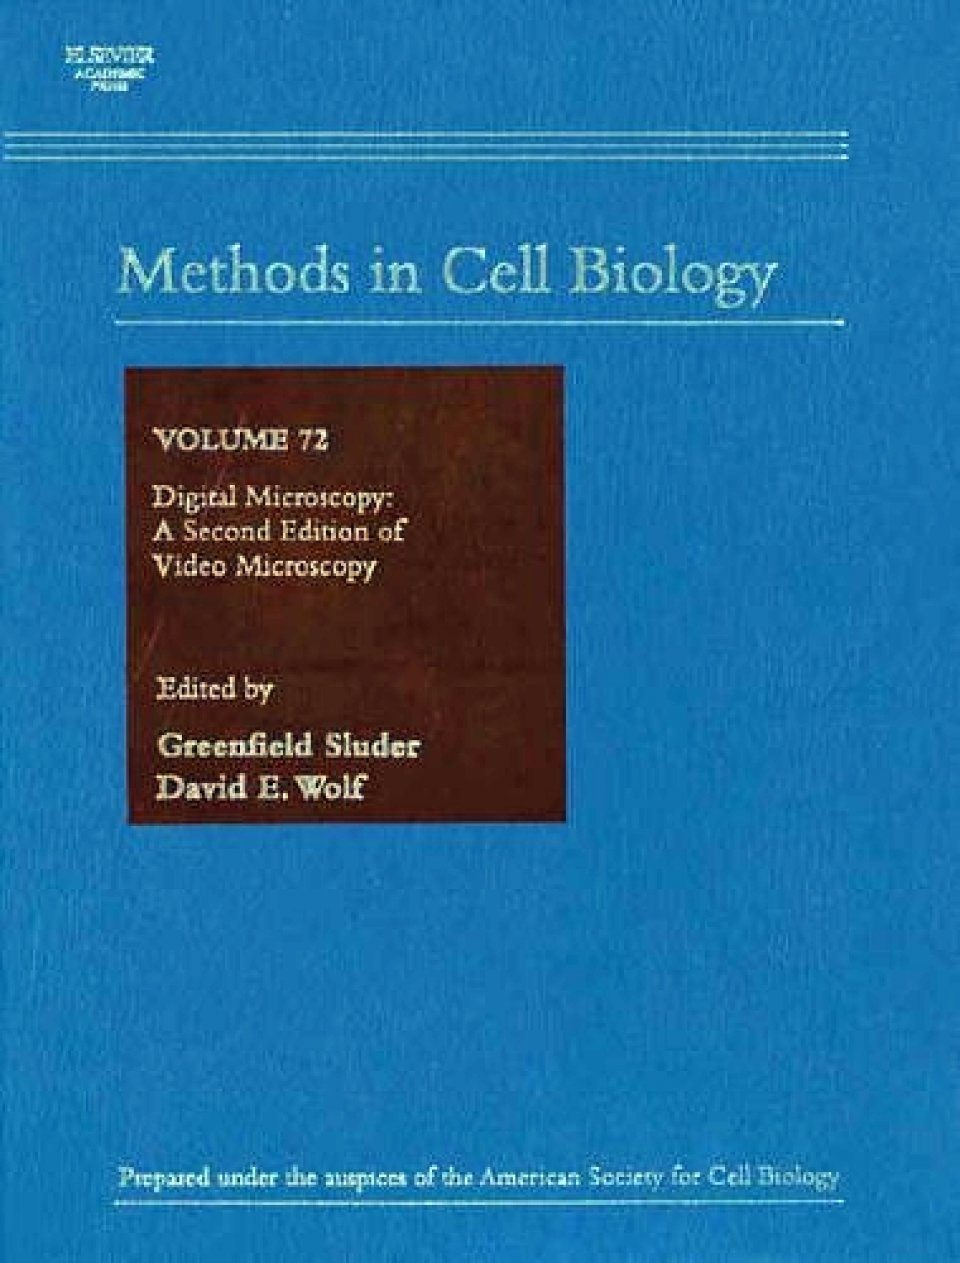 Digital Microscopy: A second edition of Video Microscopy: 72 (Methods in Cell Biology)